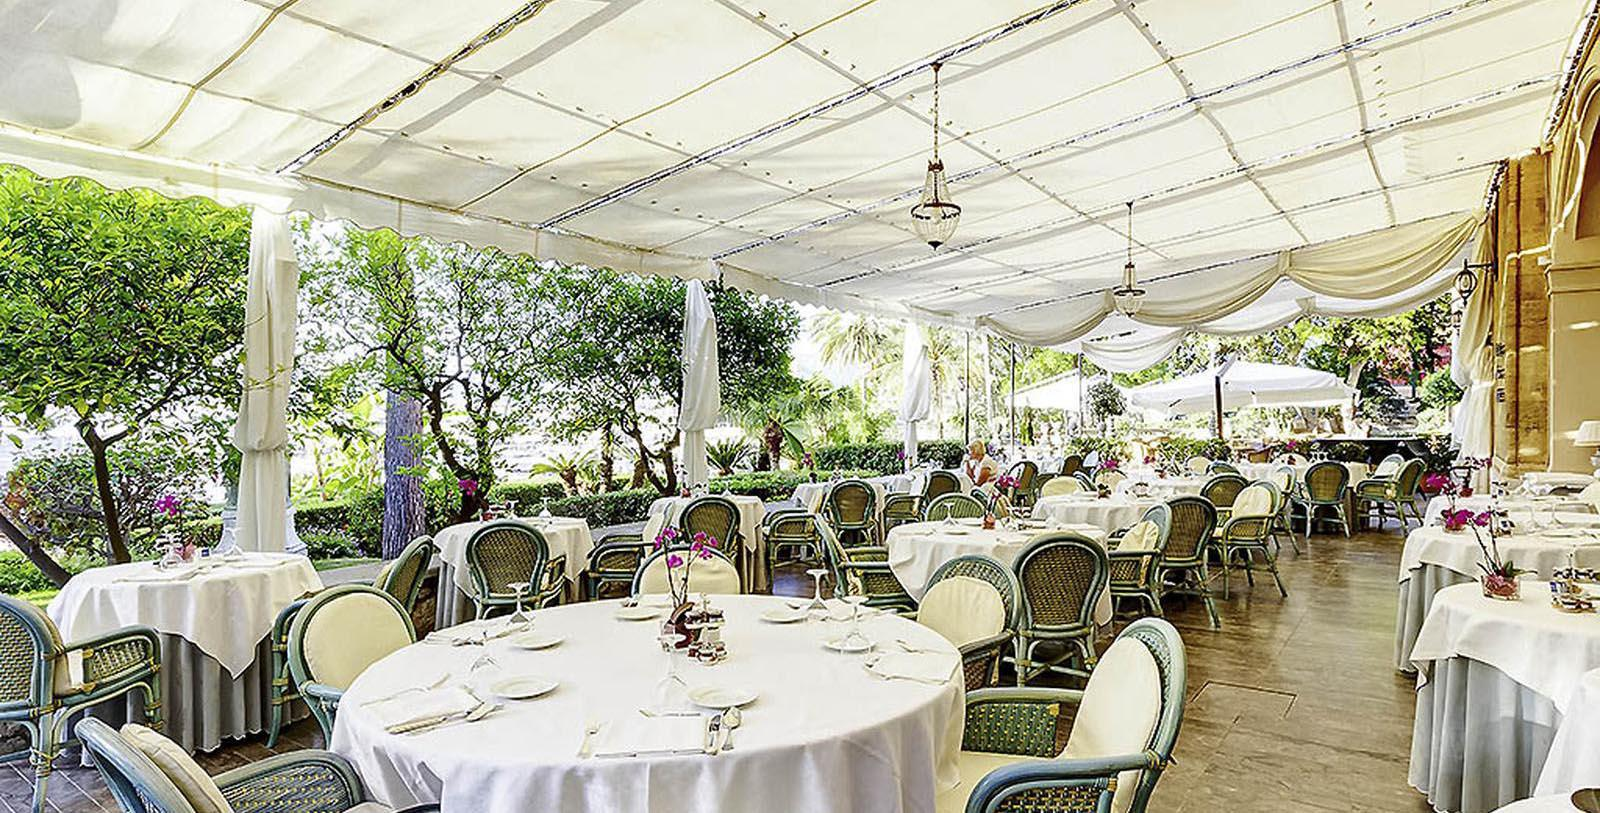 Image of Outdor Event, Grand Hotel Villa Igiea Palermo - MGallery by Sofitel, Palermo, Italy, 1890, Member of Historic Hotels Worldwide, Experience